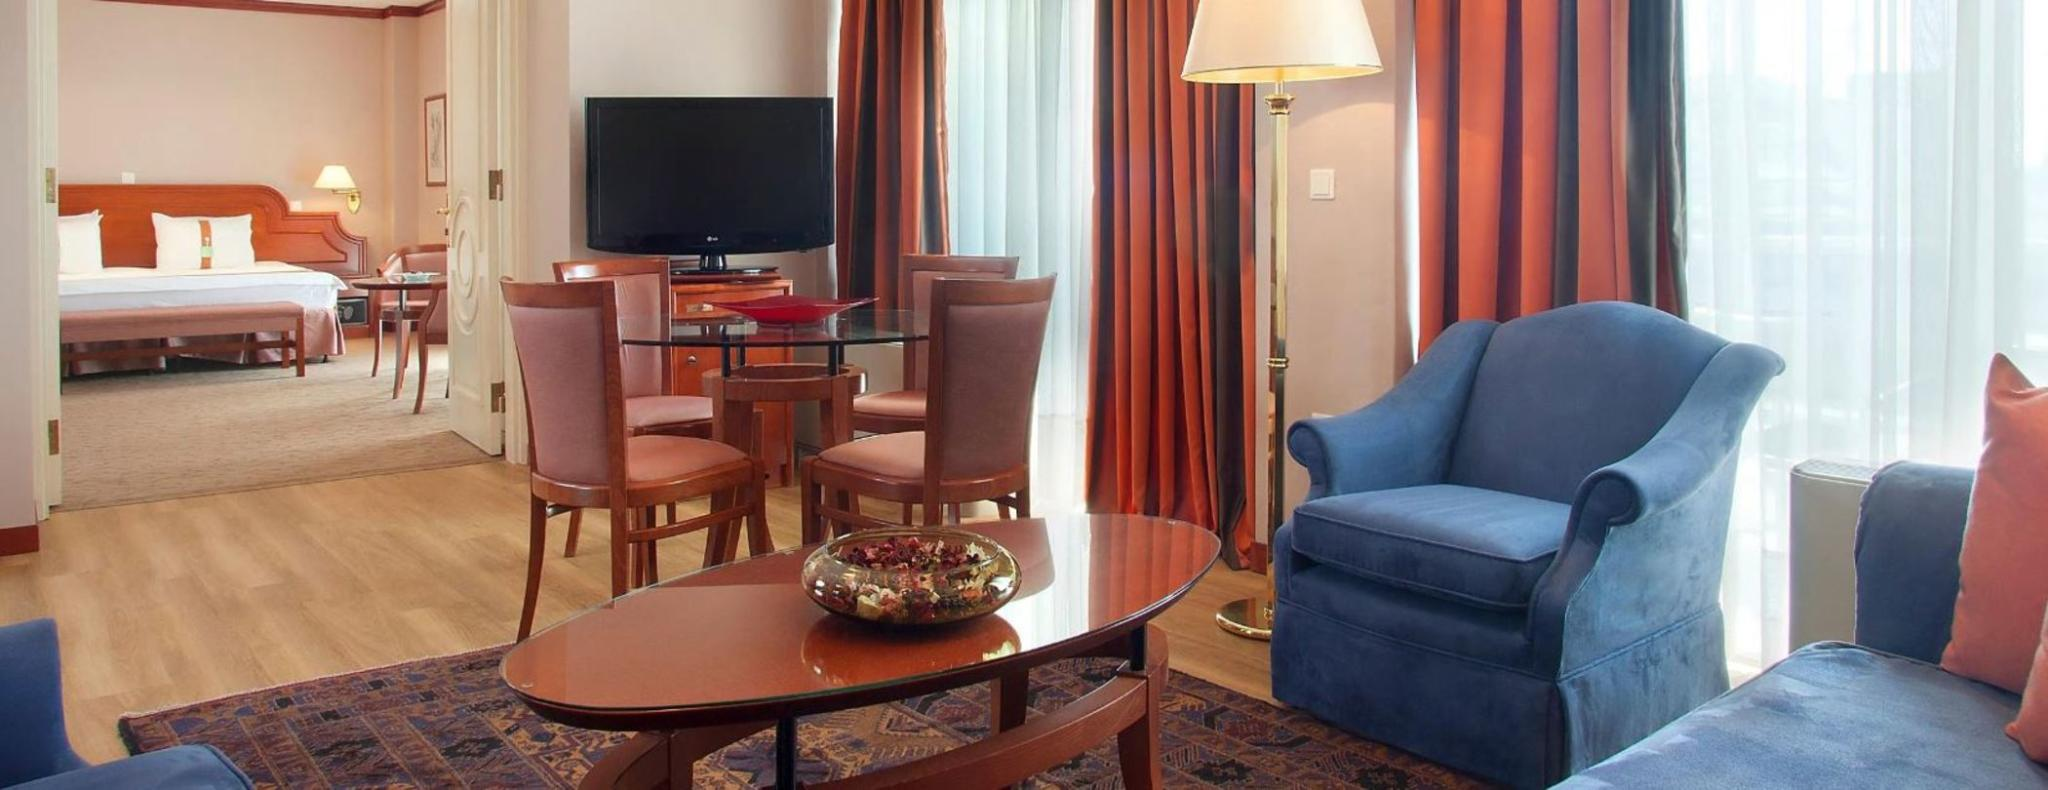 SUITE 2 ROOMS 1 KING BED EXECUTIVE STE SMOKING